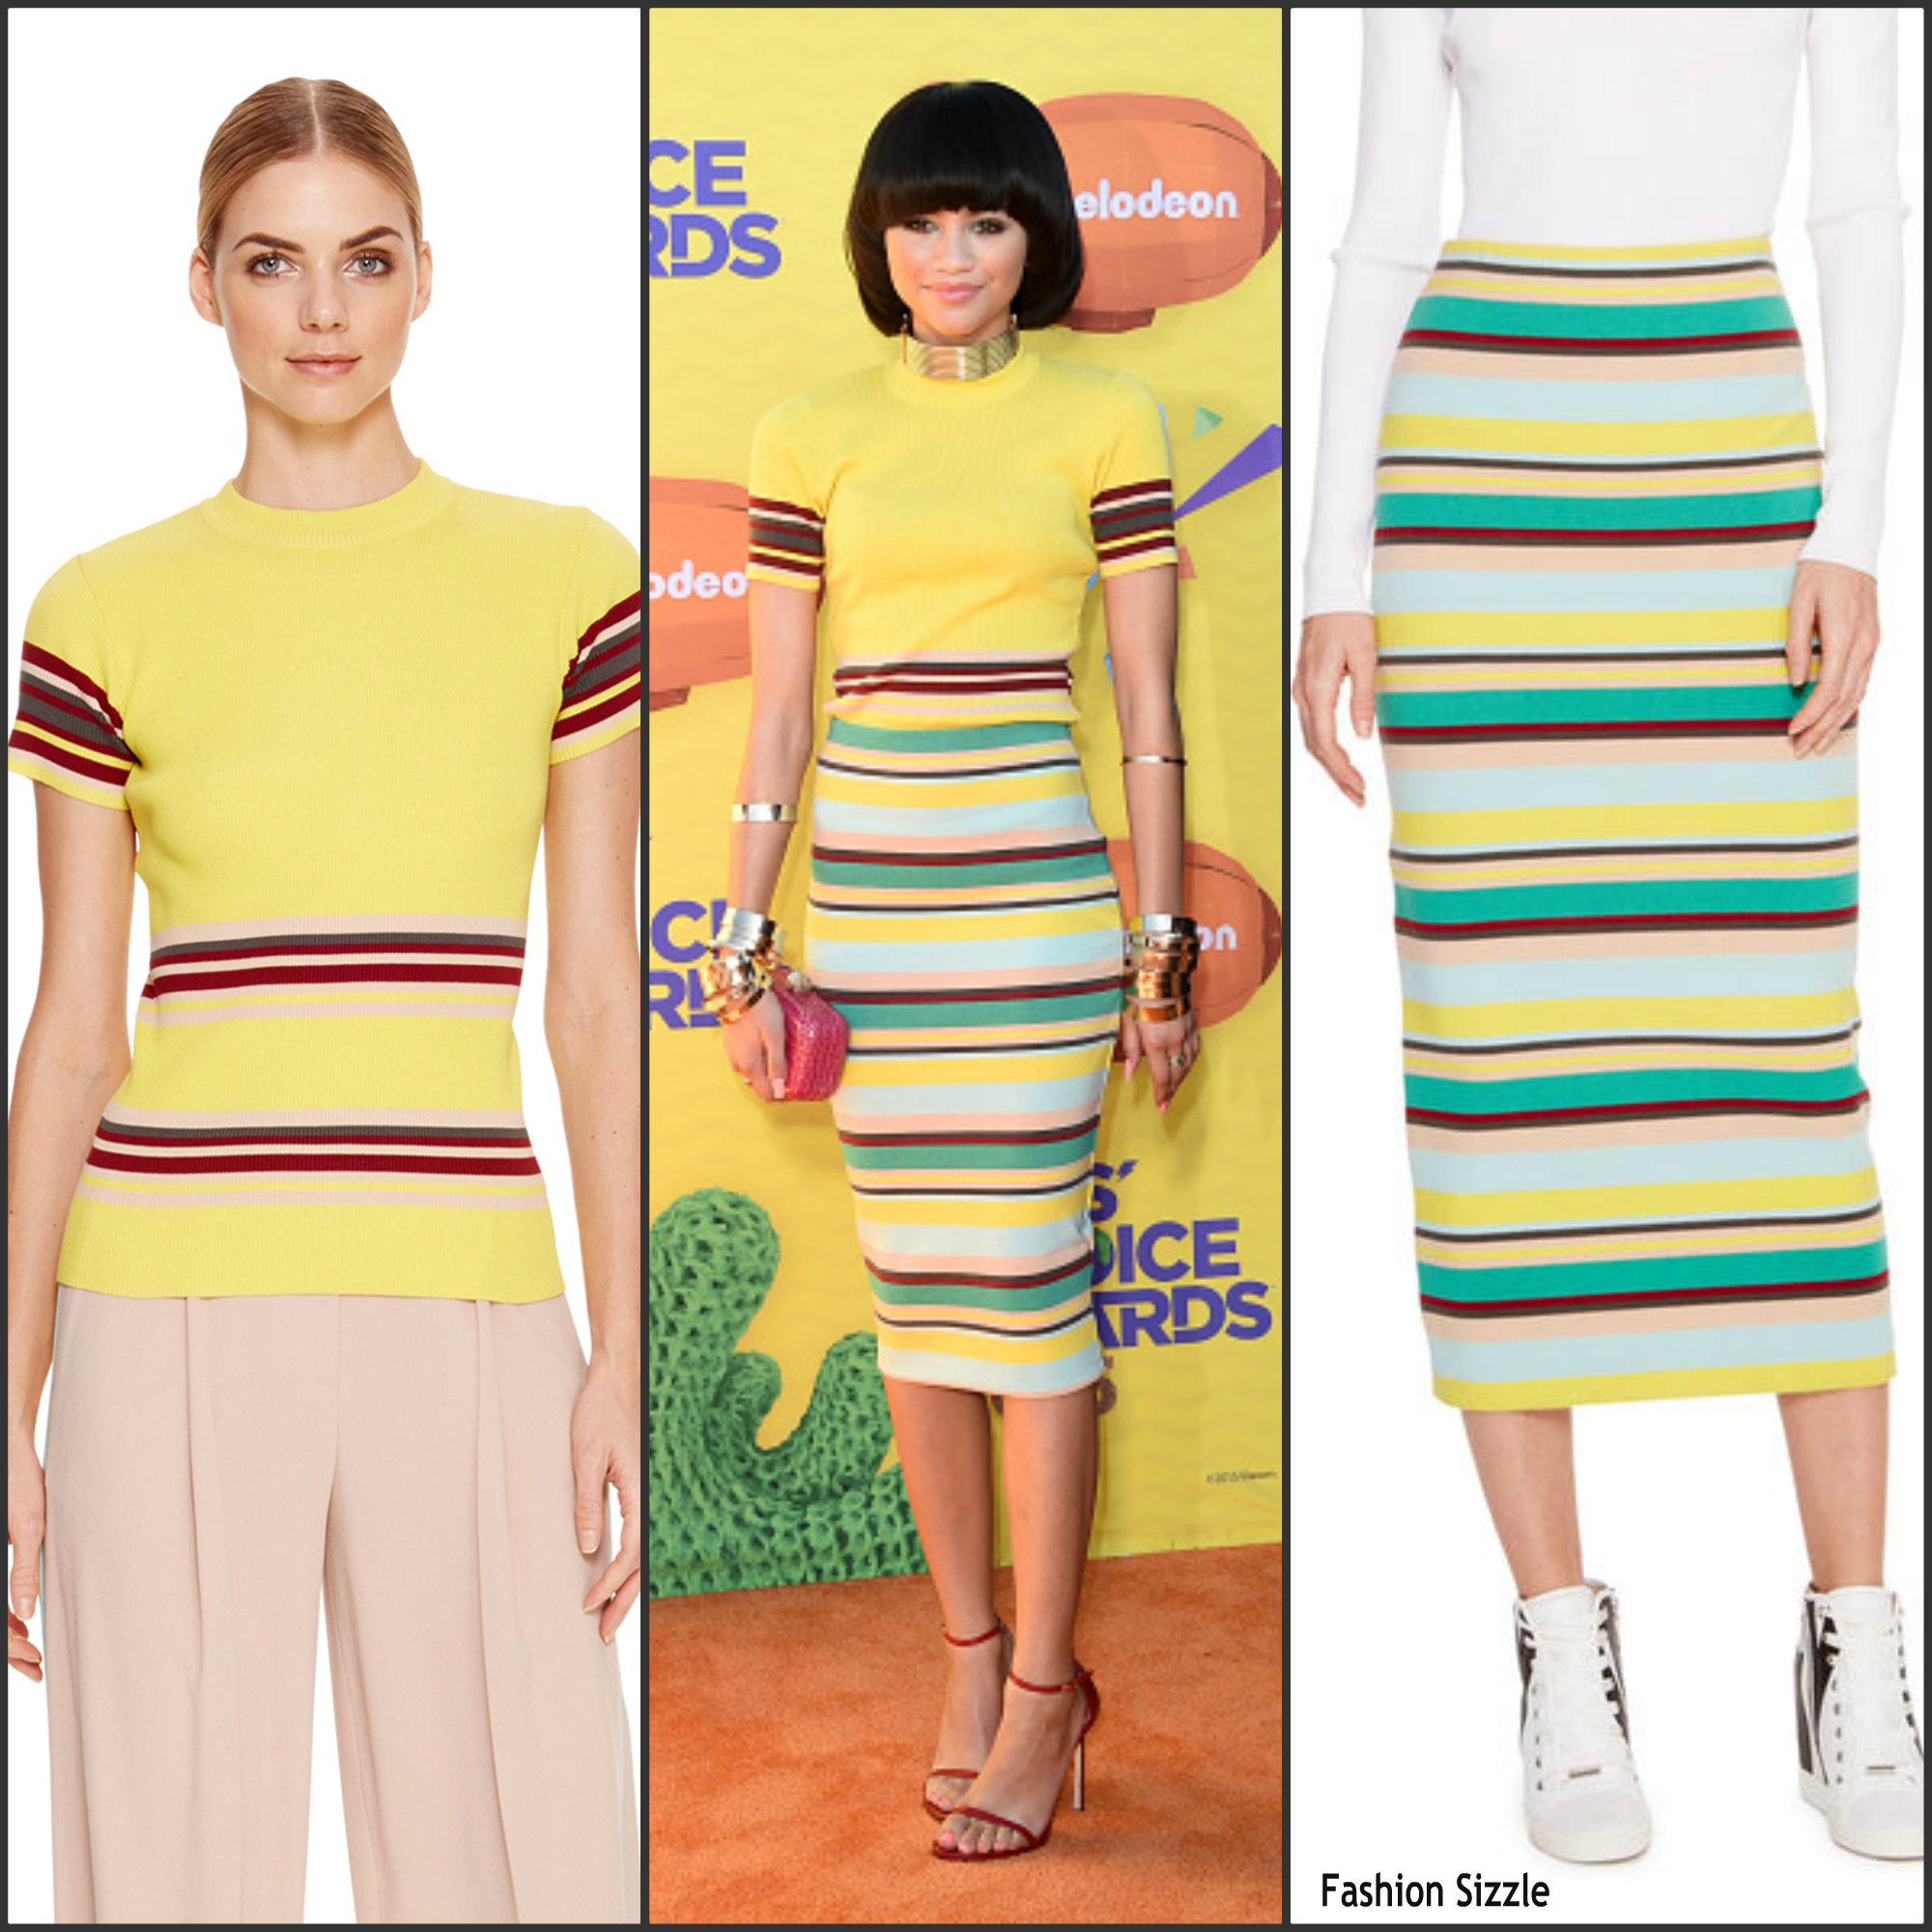 Zendaya-Coleman-in-DKNY-at-the-28th-Annual-Kids-Choice-Awards